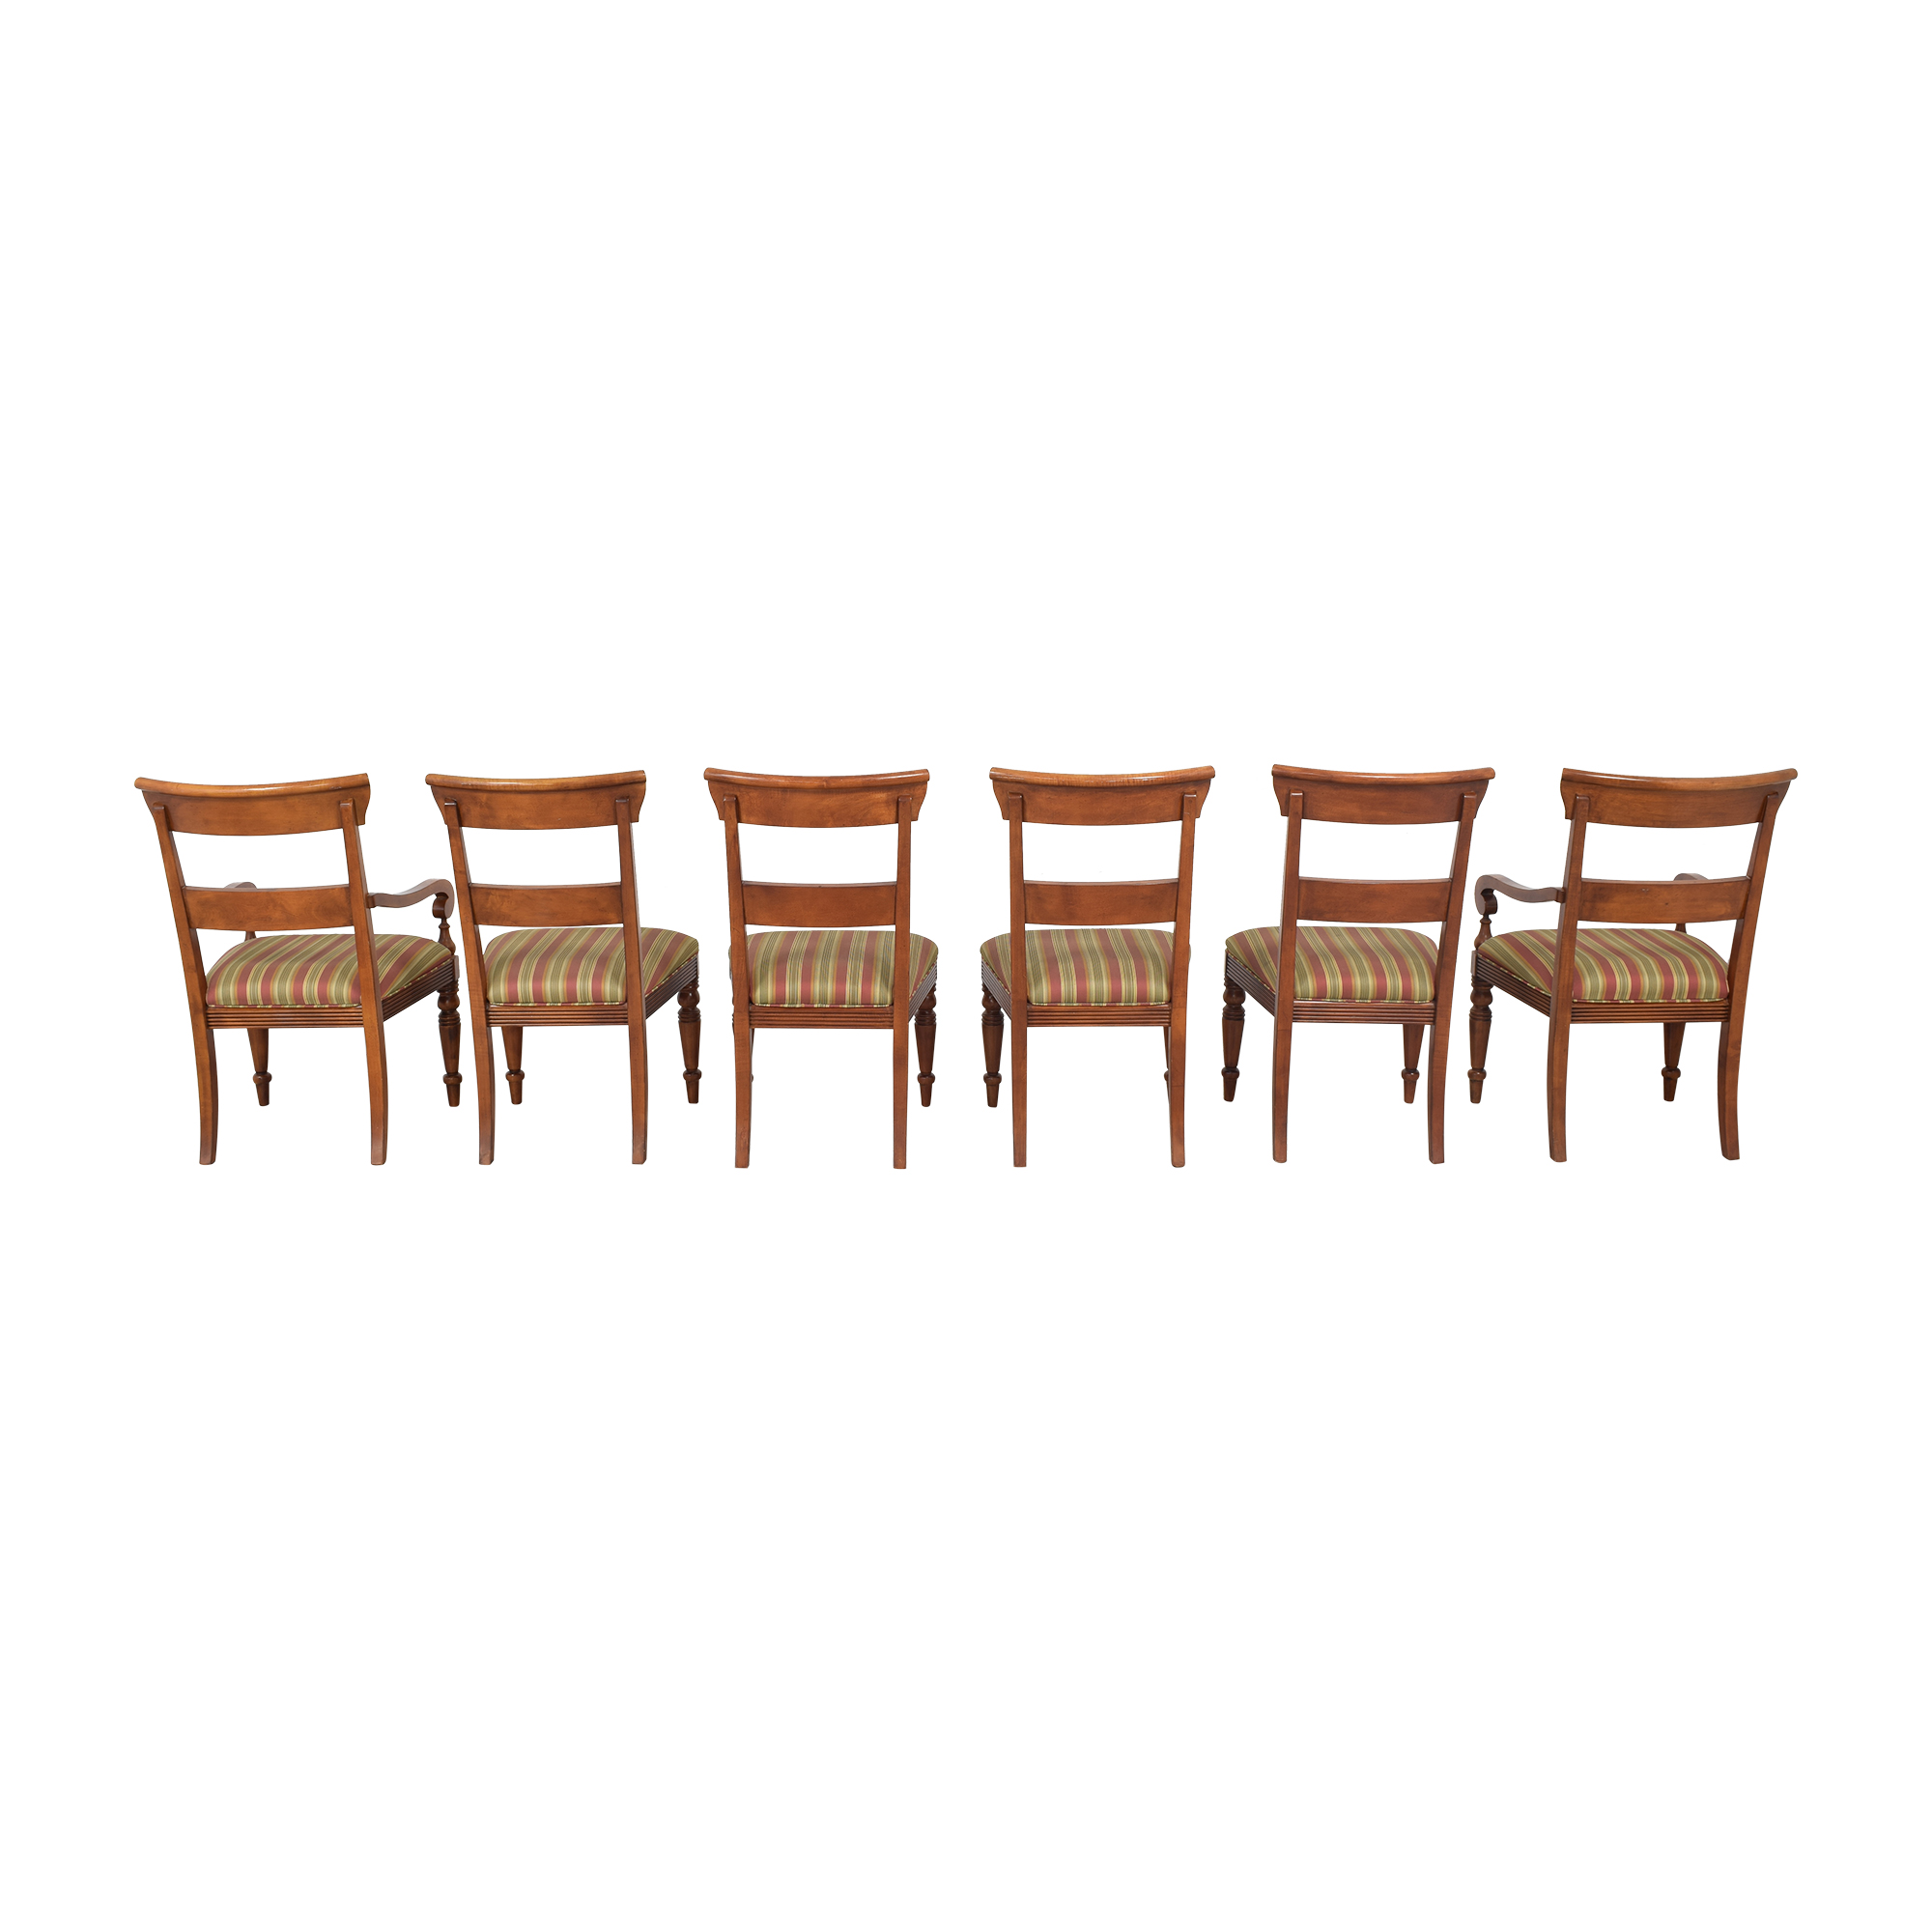 shop Ethan Allen British Classics Dining Chairs Ethan Allen Chairs